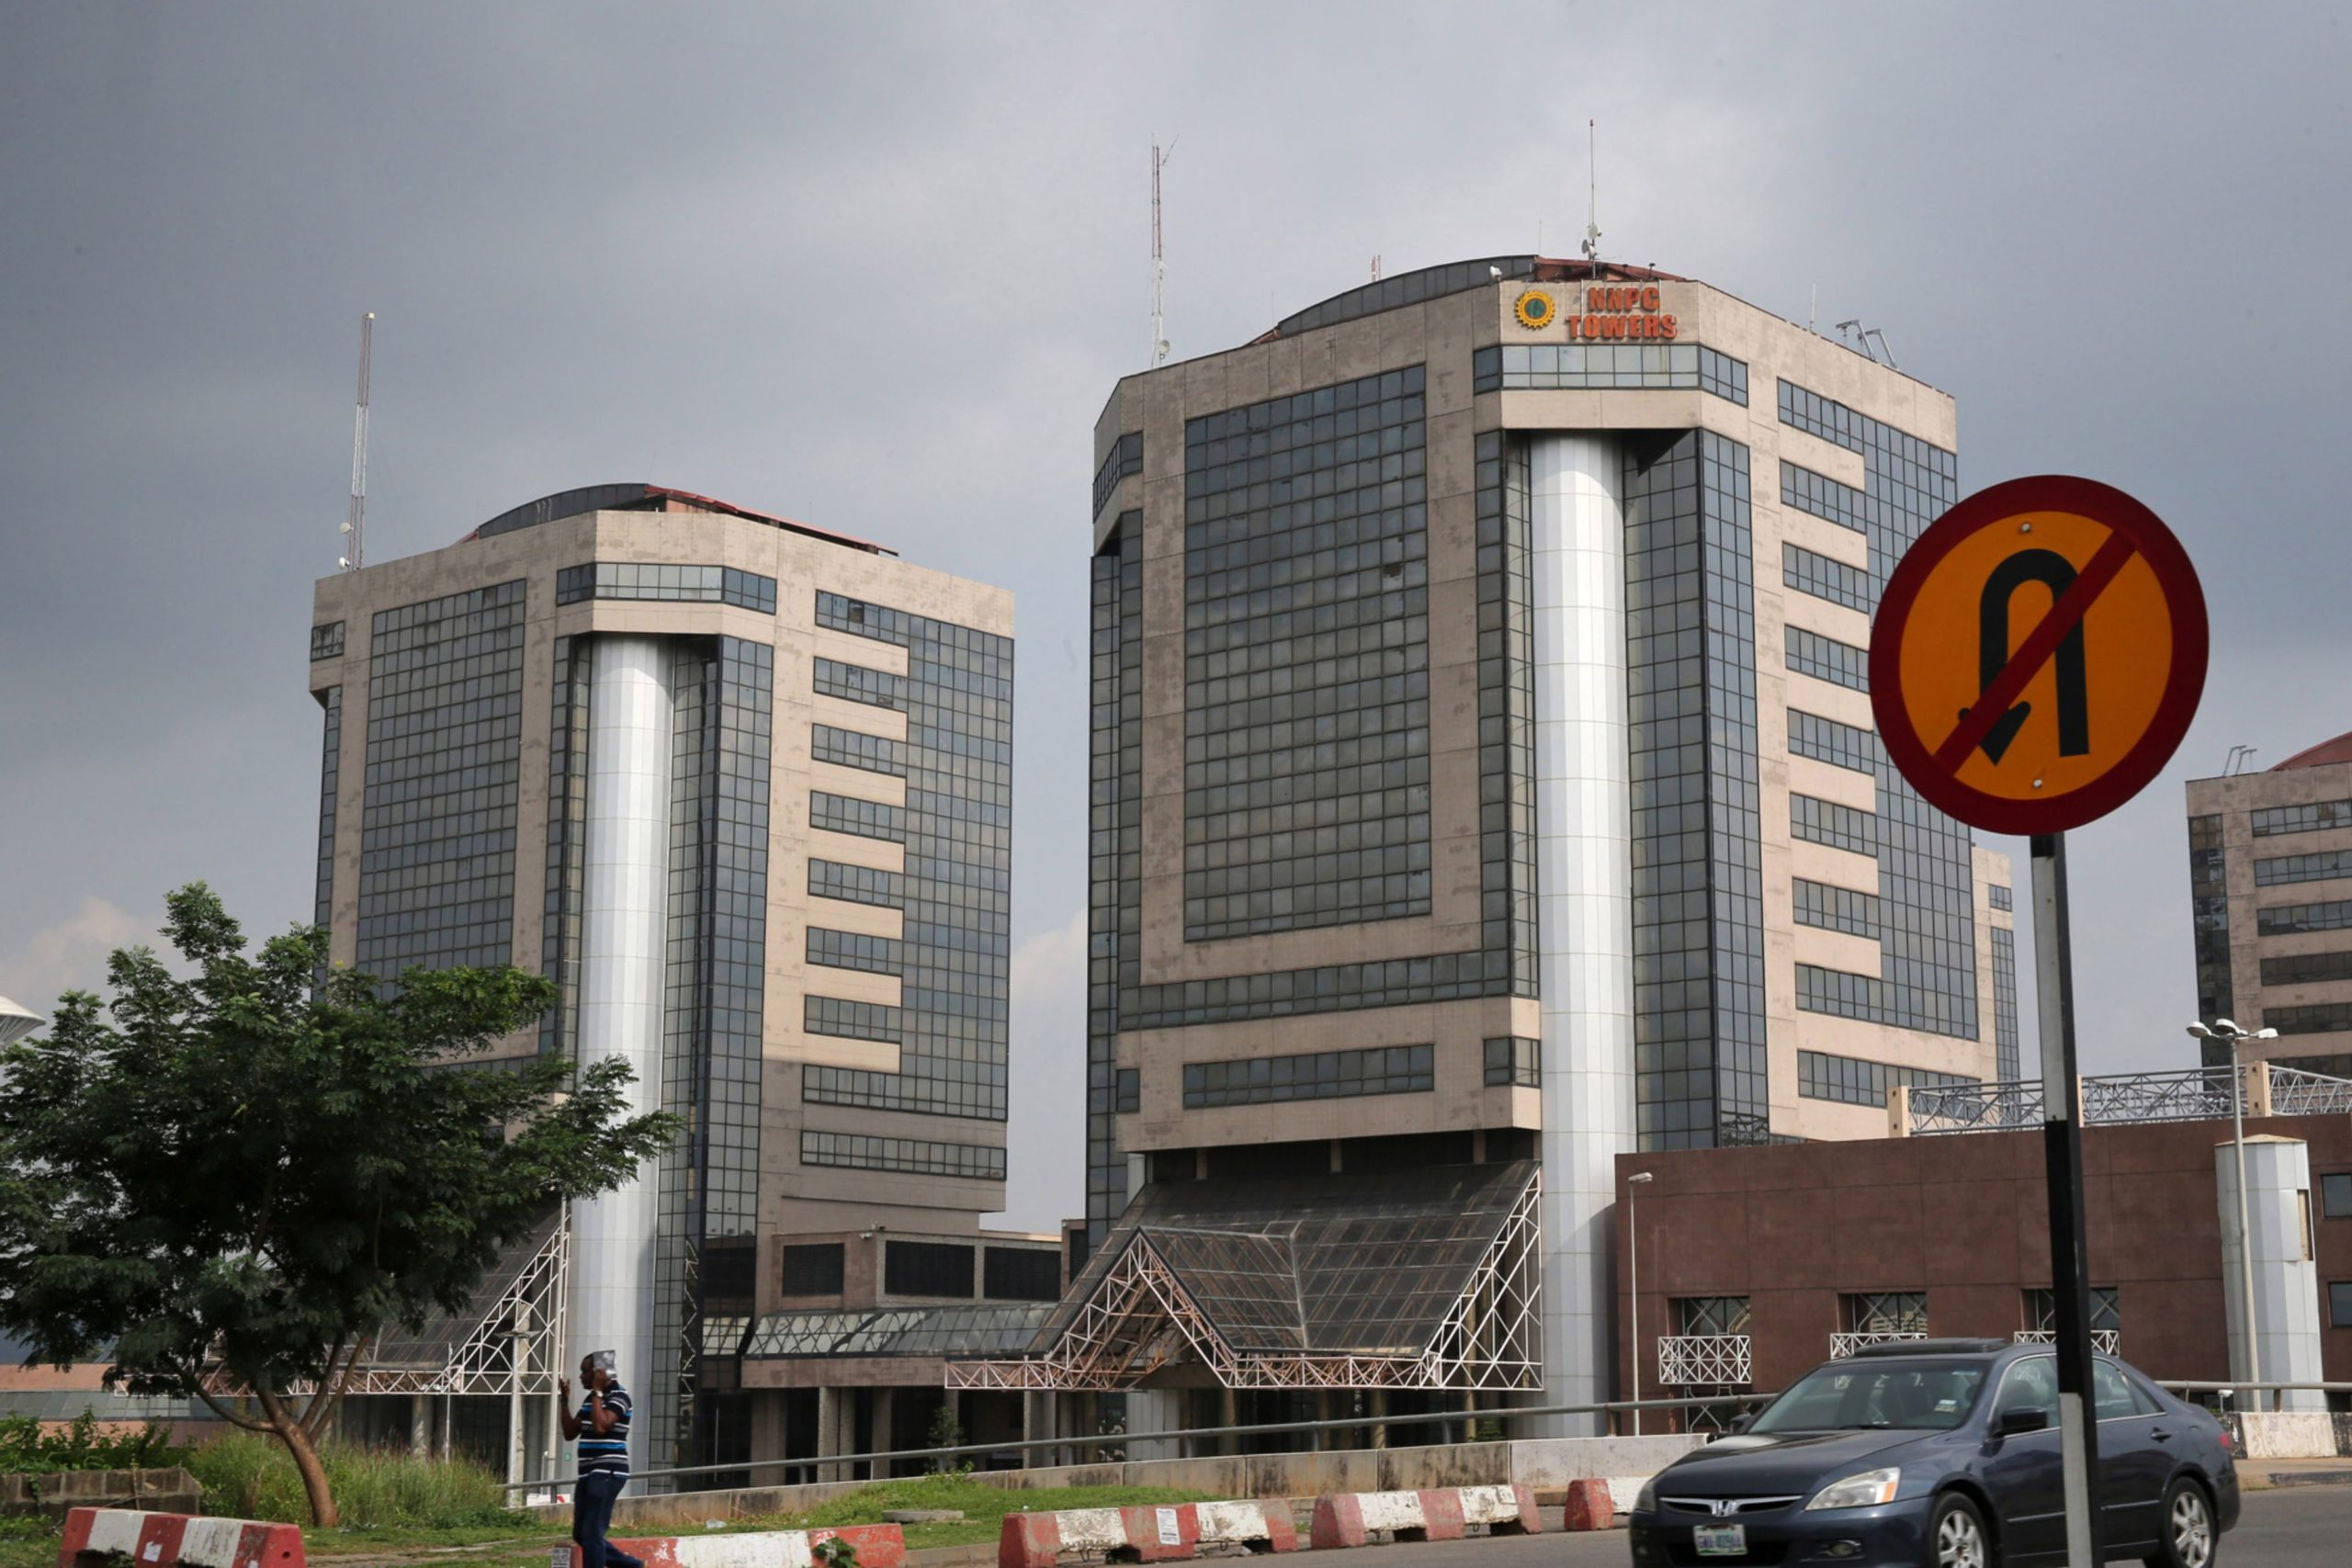 dailymaverick.co.za - Bloomberg - Business Maverick: Nigeria May Sell Stake in State Oil Company in Industry Overhaul